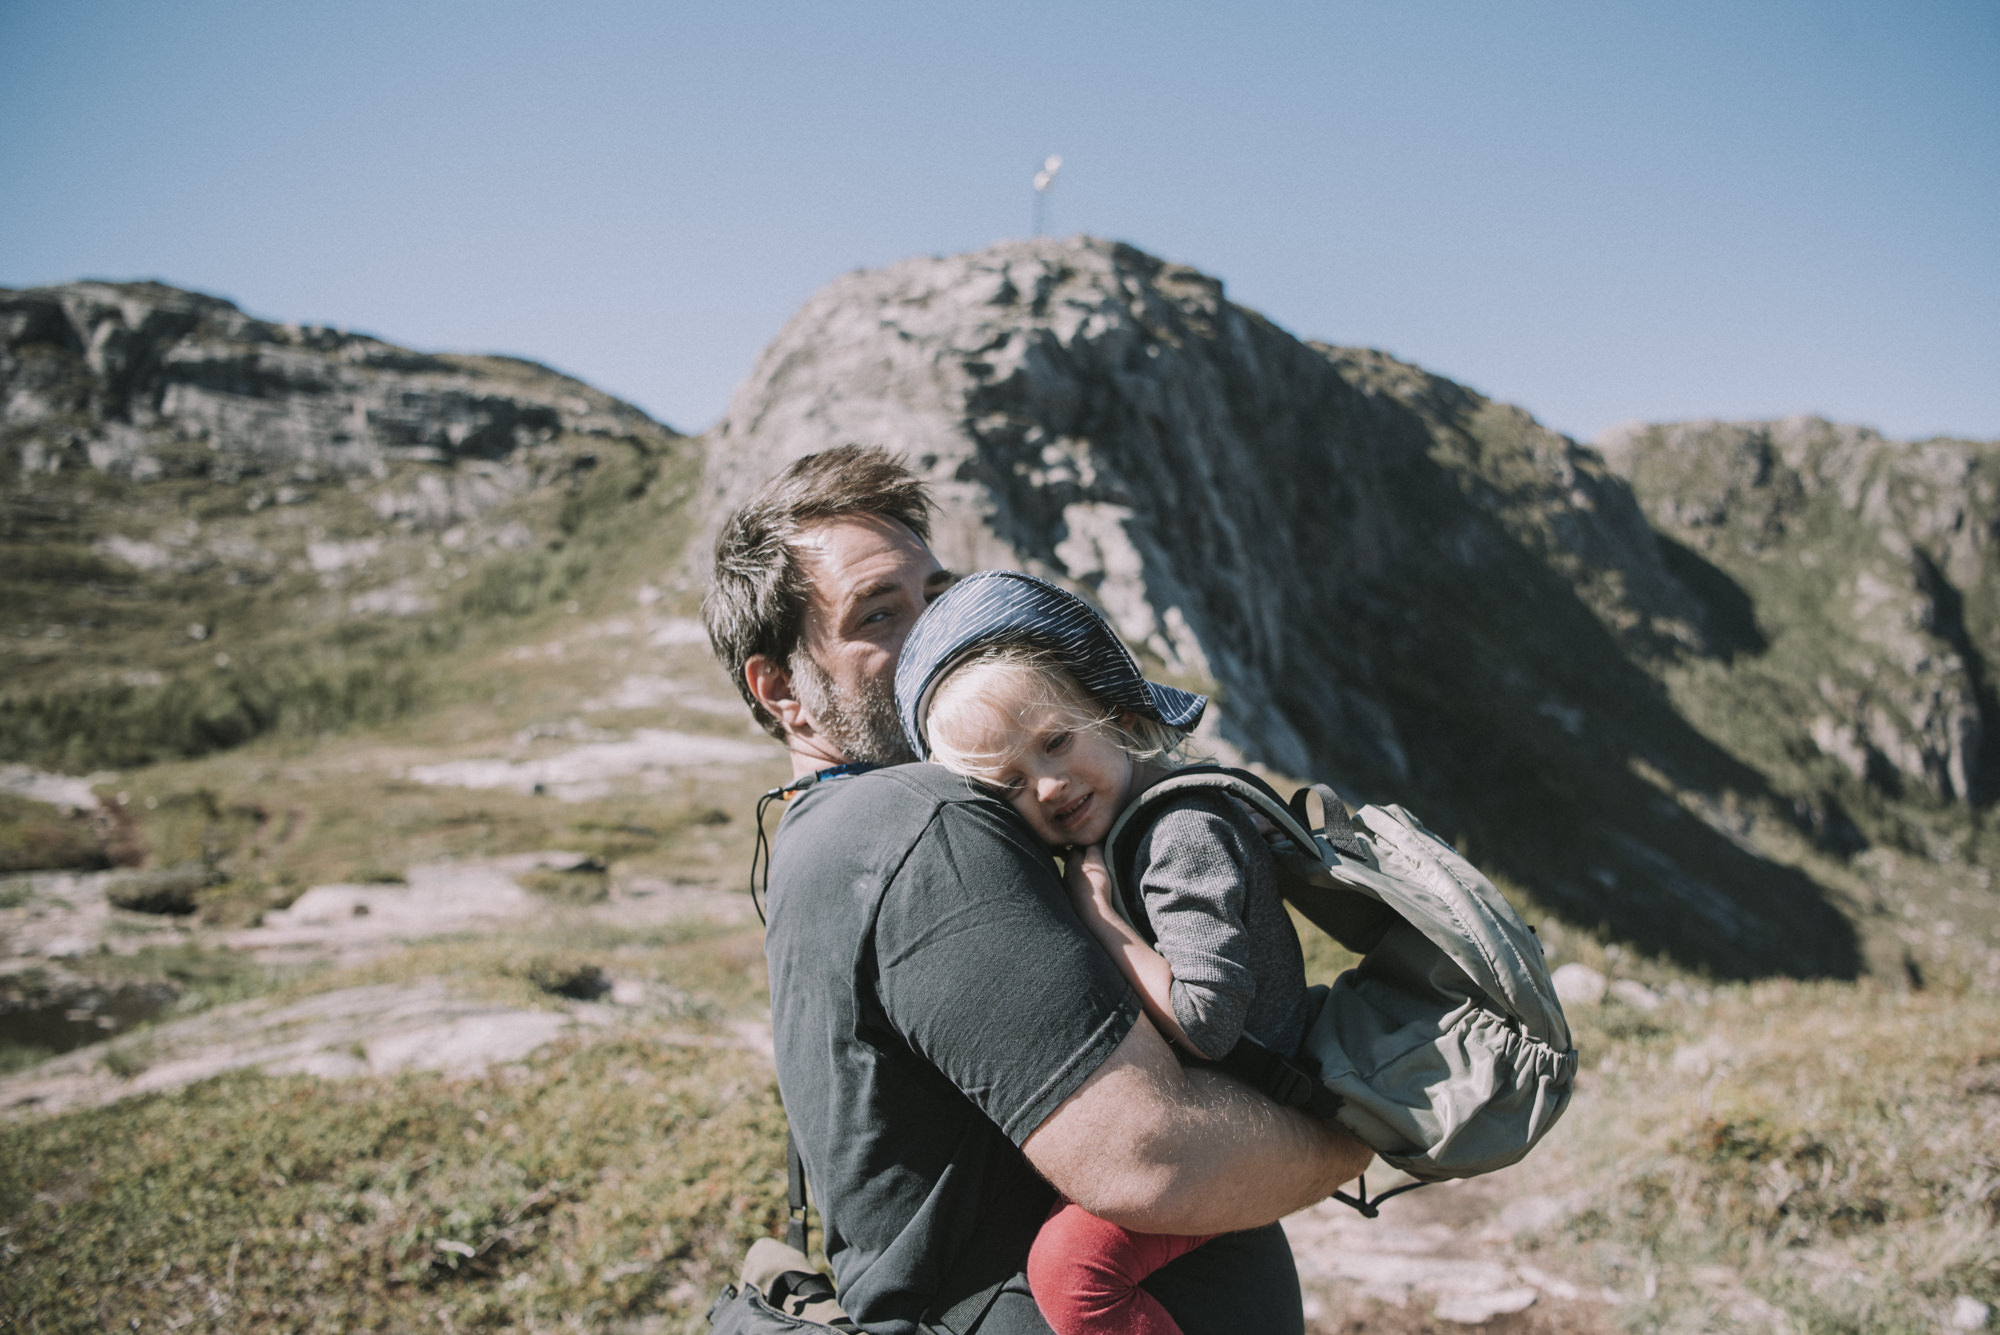 NFLD_Travelling_With_Toddlers-79